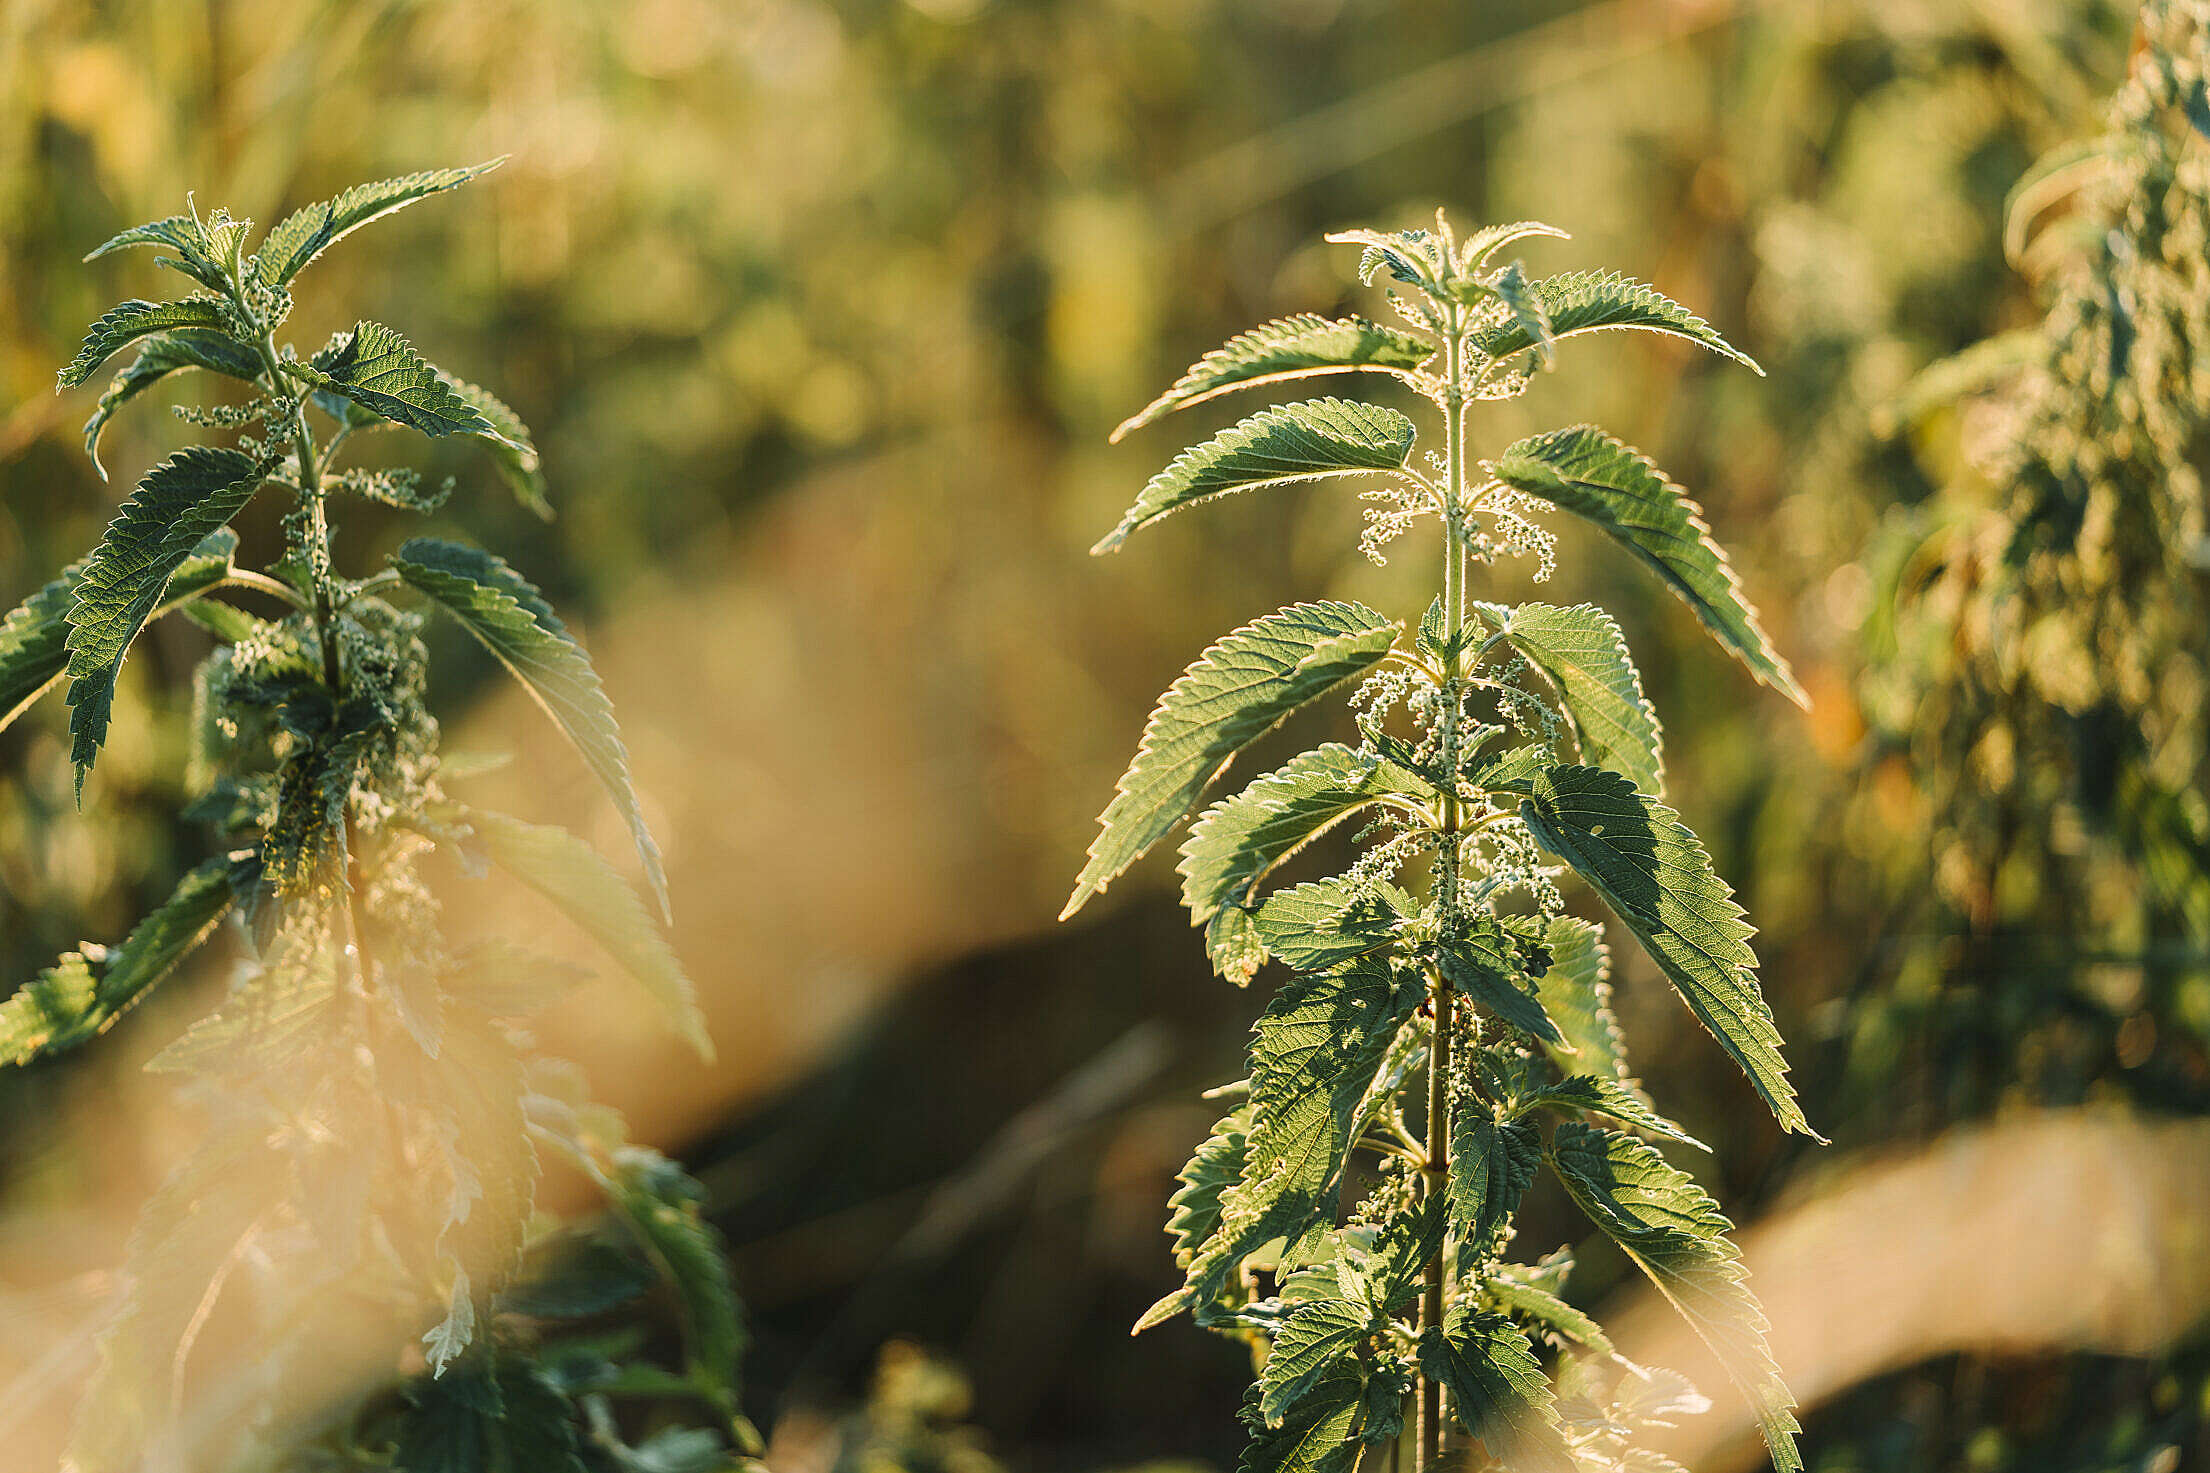 Nettle Dioecious Plant Free Stock Photo